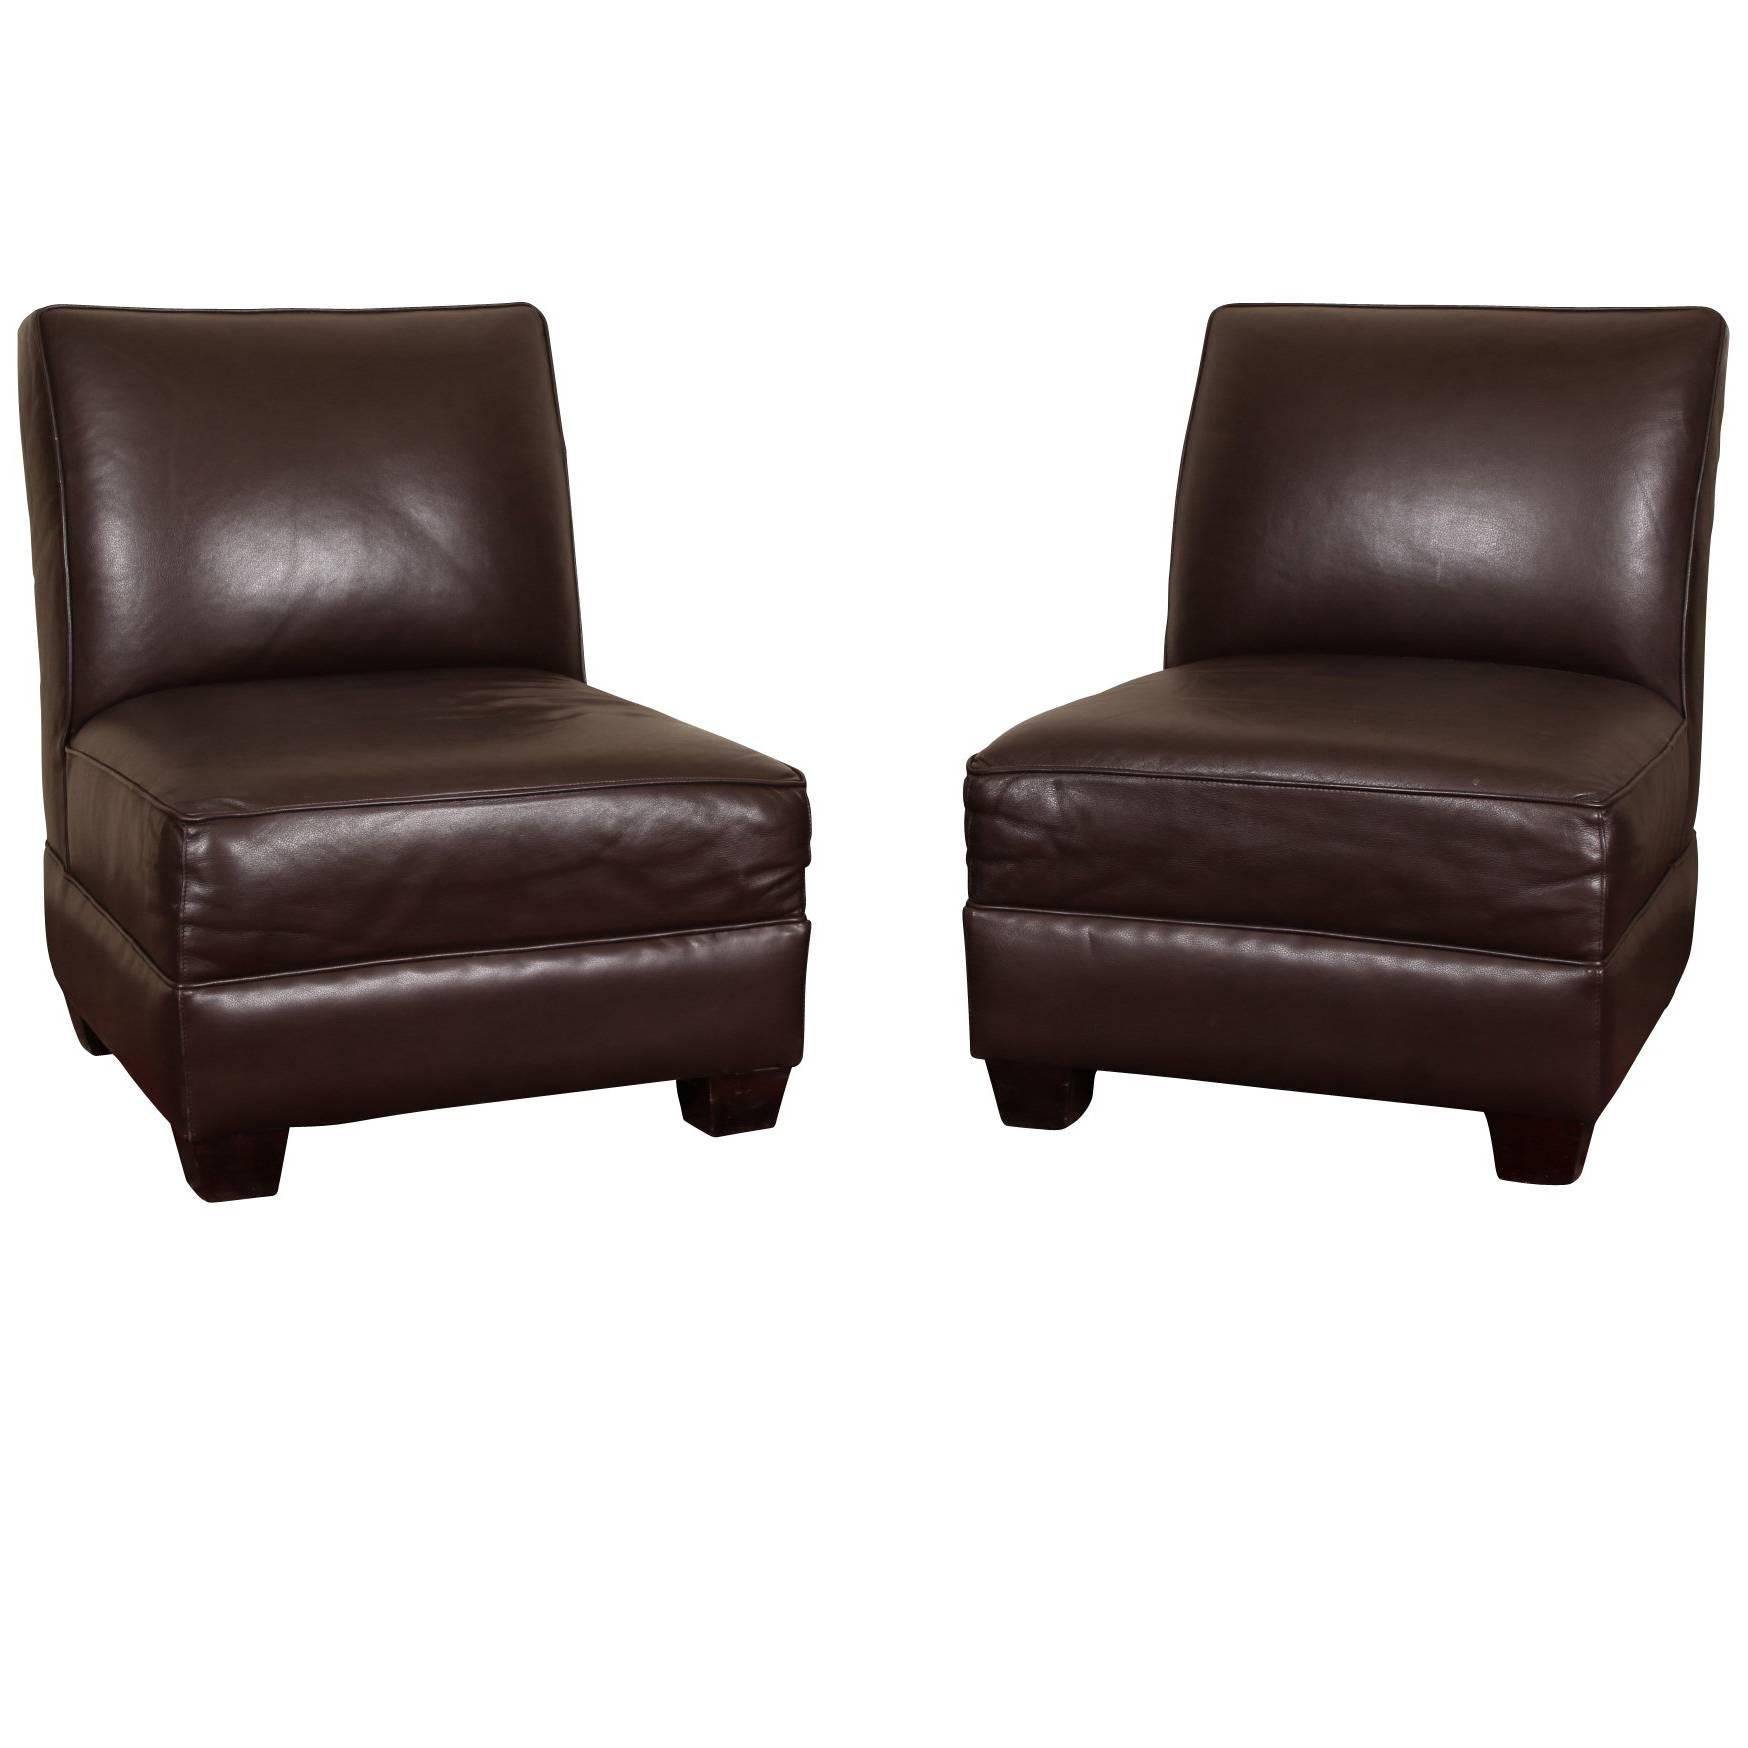 brown slipper chair to relieve back pain pair of chocolate leather chairs for sale at 1stdibs